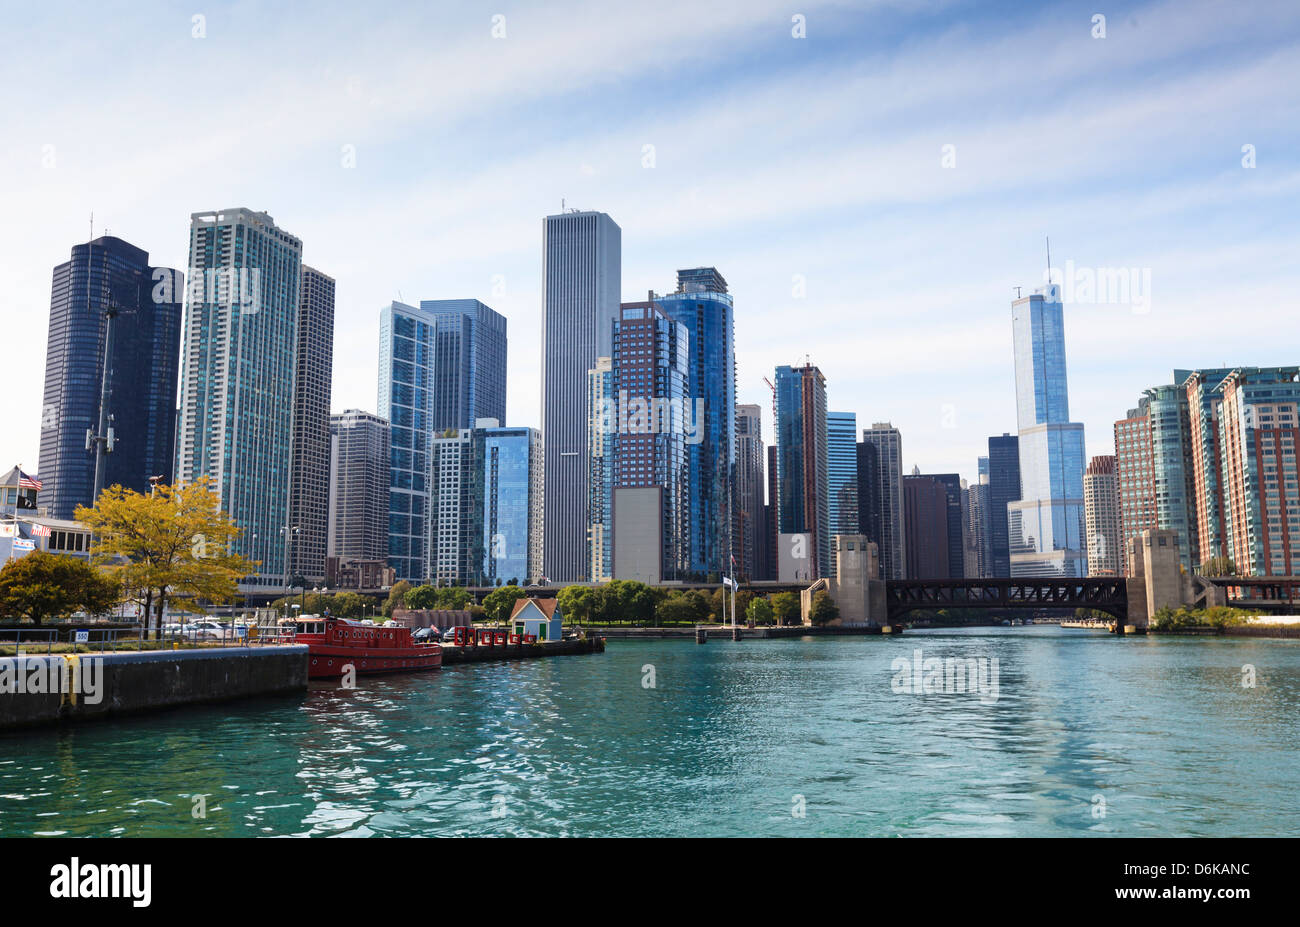 City skyline from the Chicago River, Chicago, Illinois, United States of America, North America - Stock Image